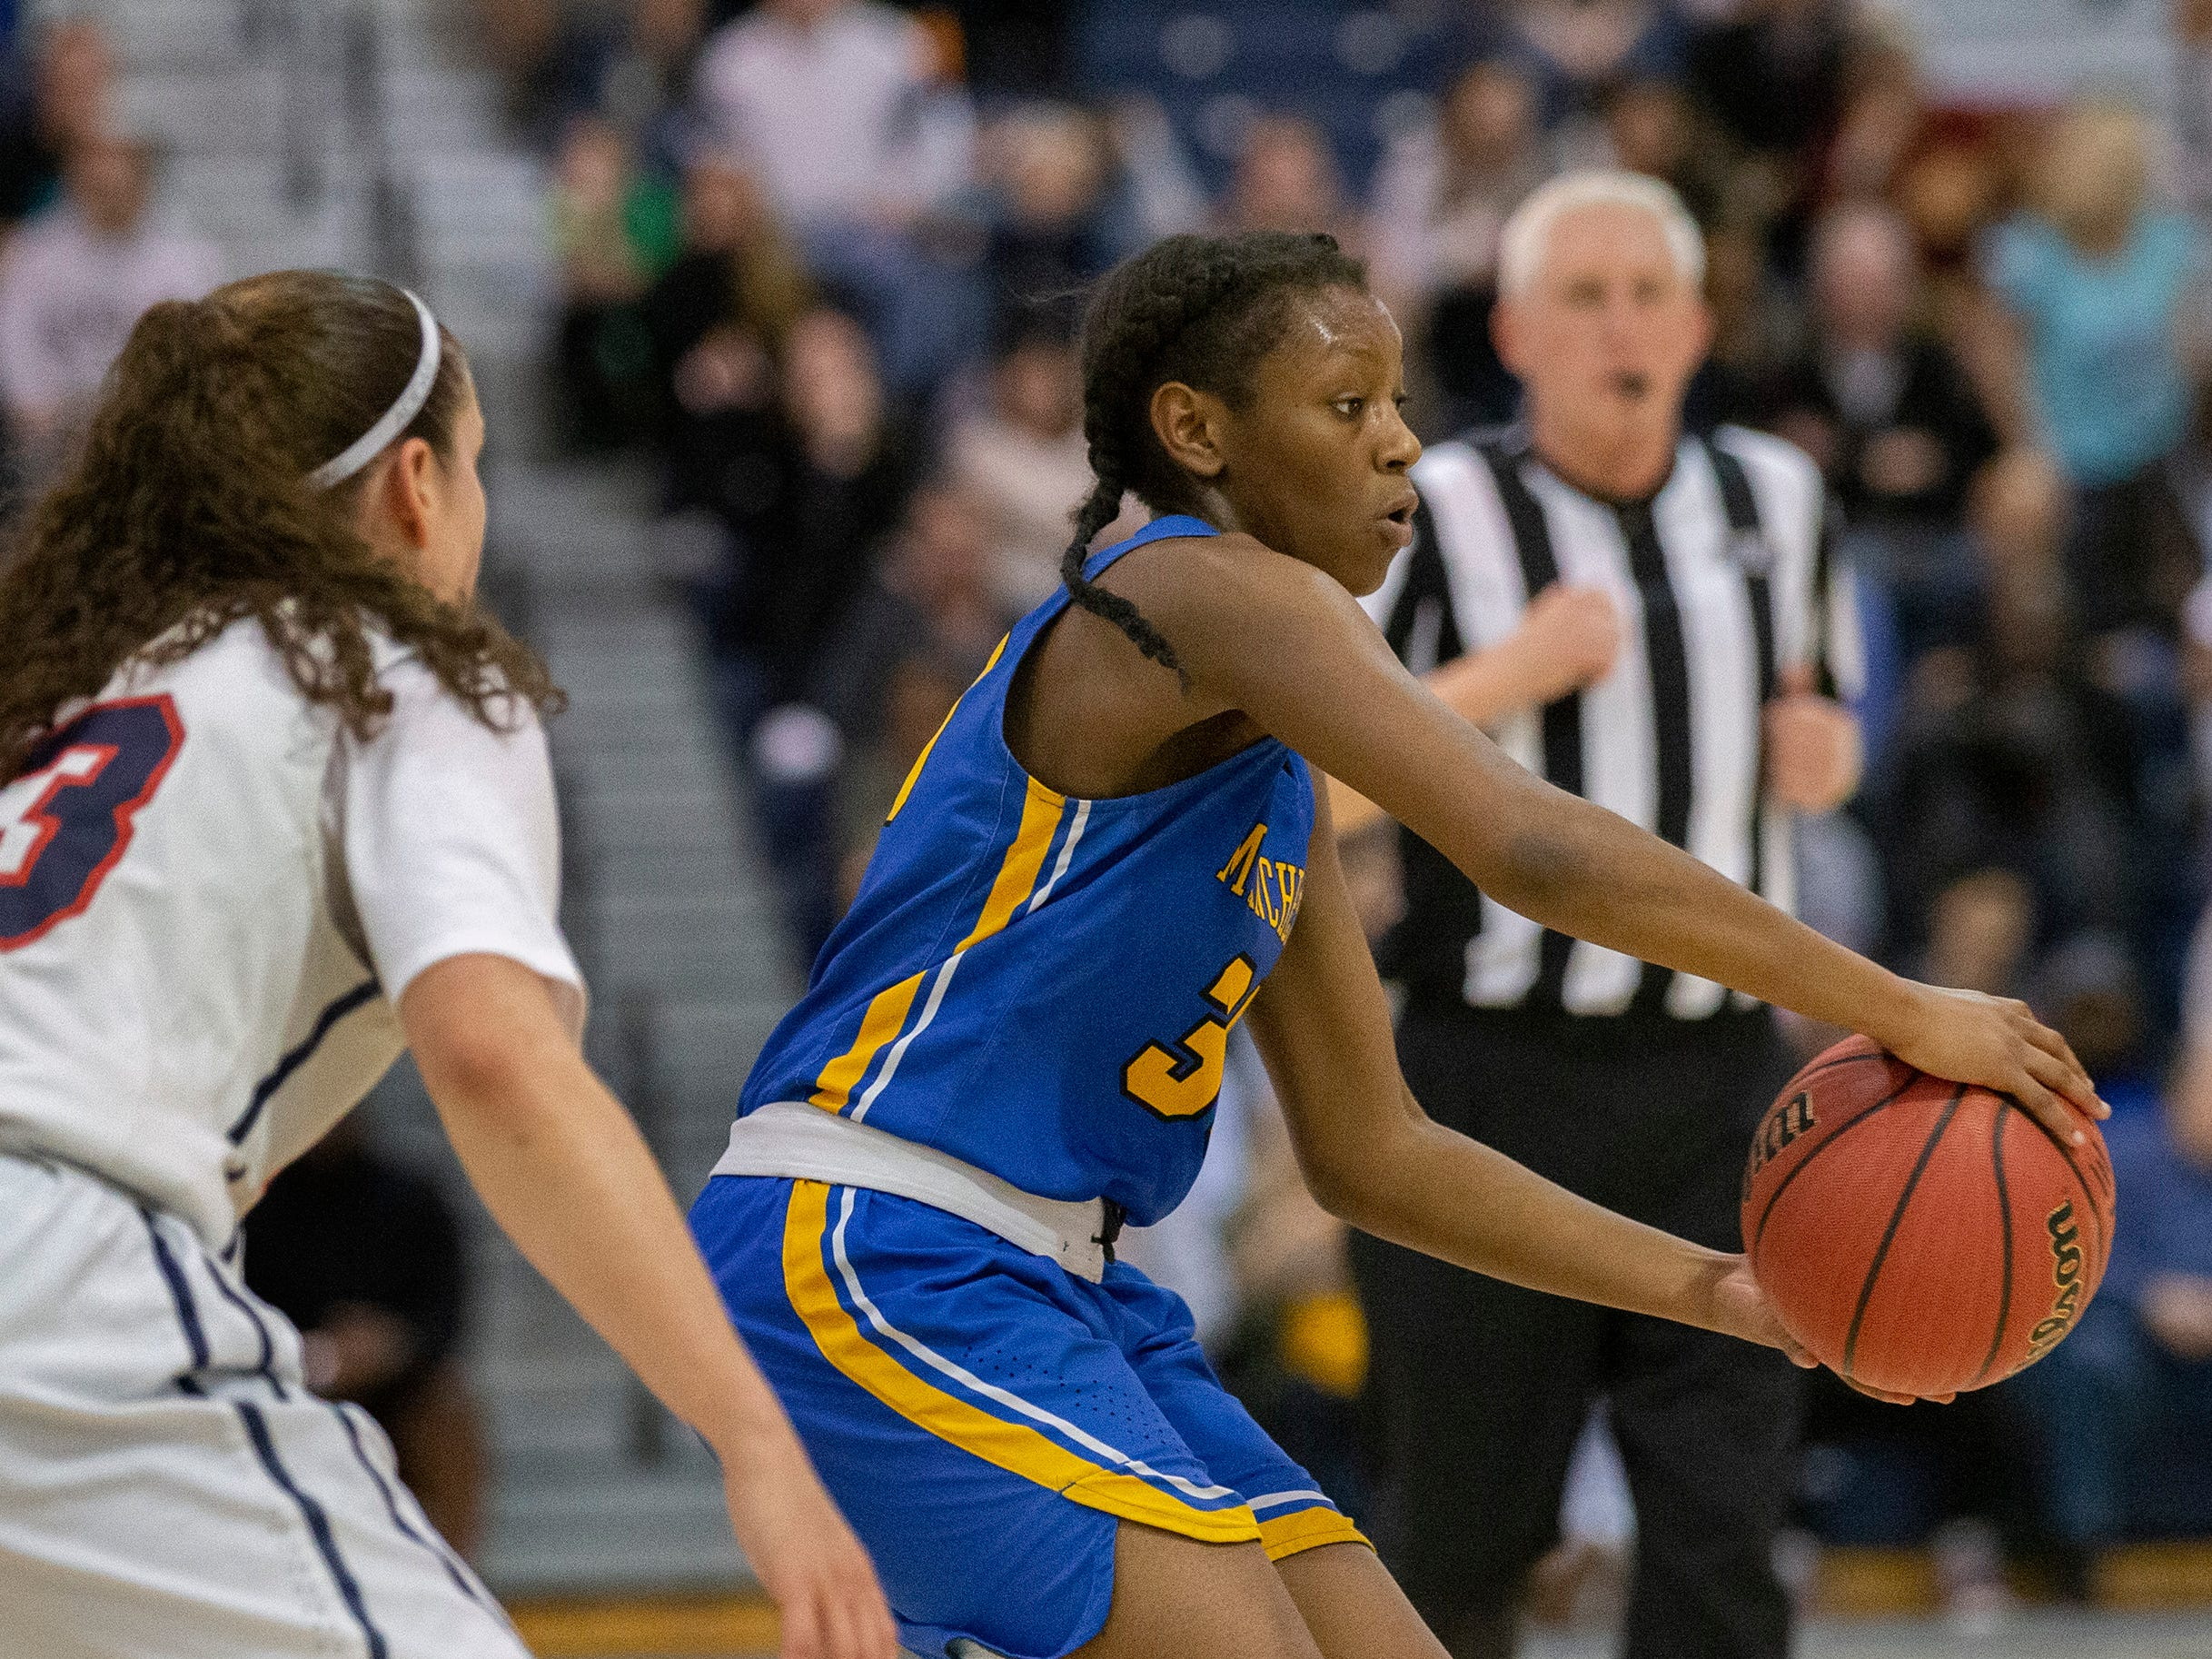 Manchester's Serenity Anderson looks to pass in with Michelle Sidor of Saddle River Day defending. Manchester Girls Basketball vs Saddle River Day in NJSIAA Tournament of Champions Semifinal in Toms River on March 14, 2019.